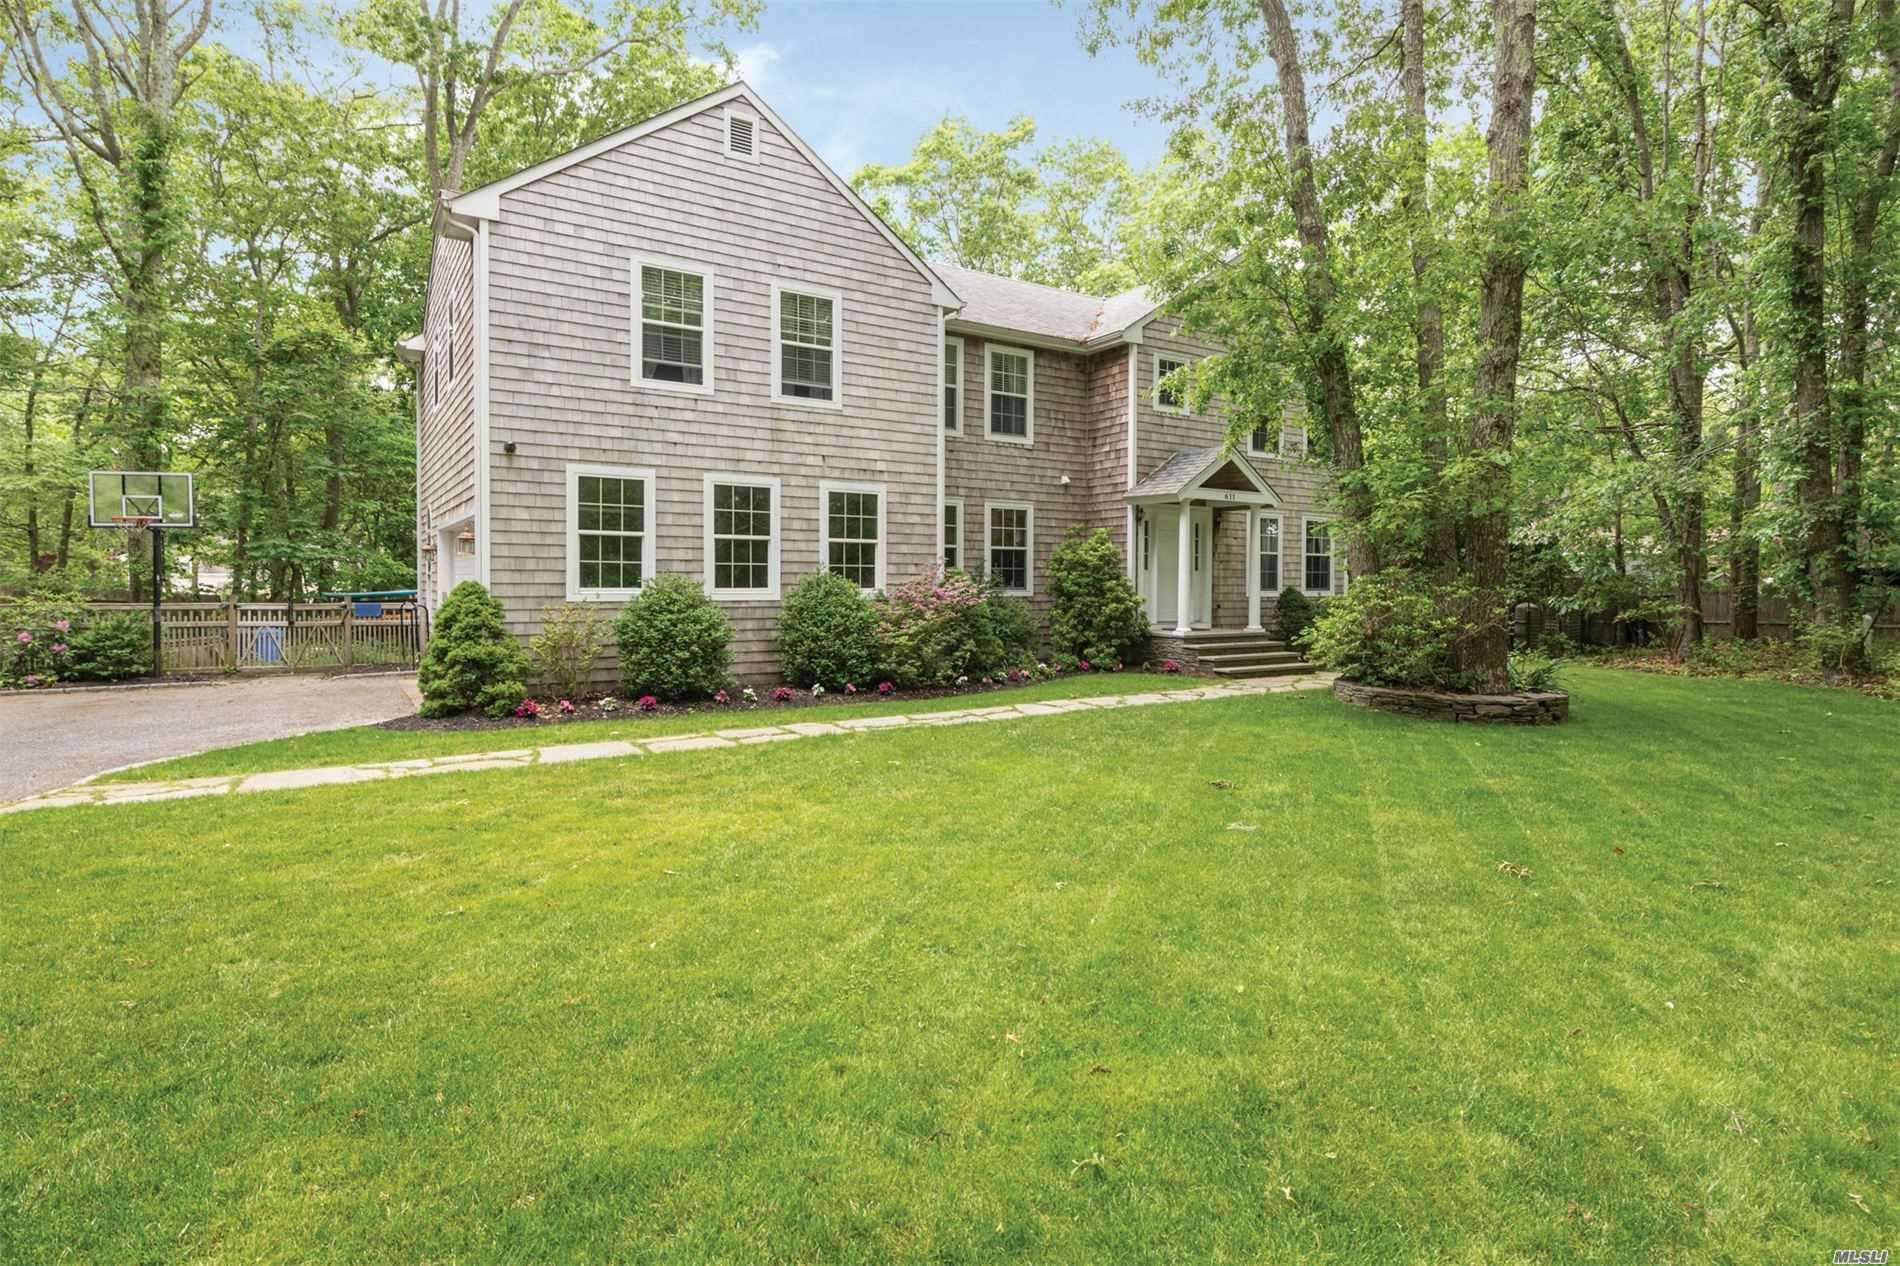 611 Water Mill Towd, Southampton, NY 11968 - MLS#: 3139596